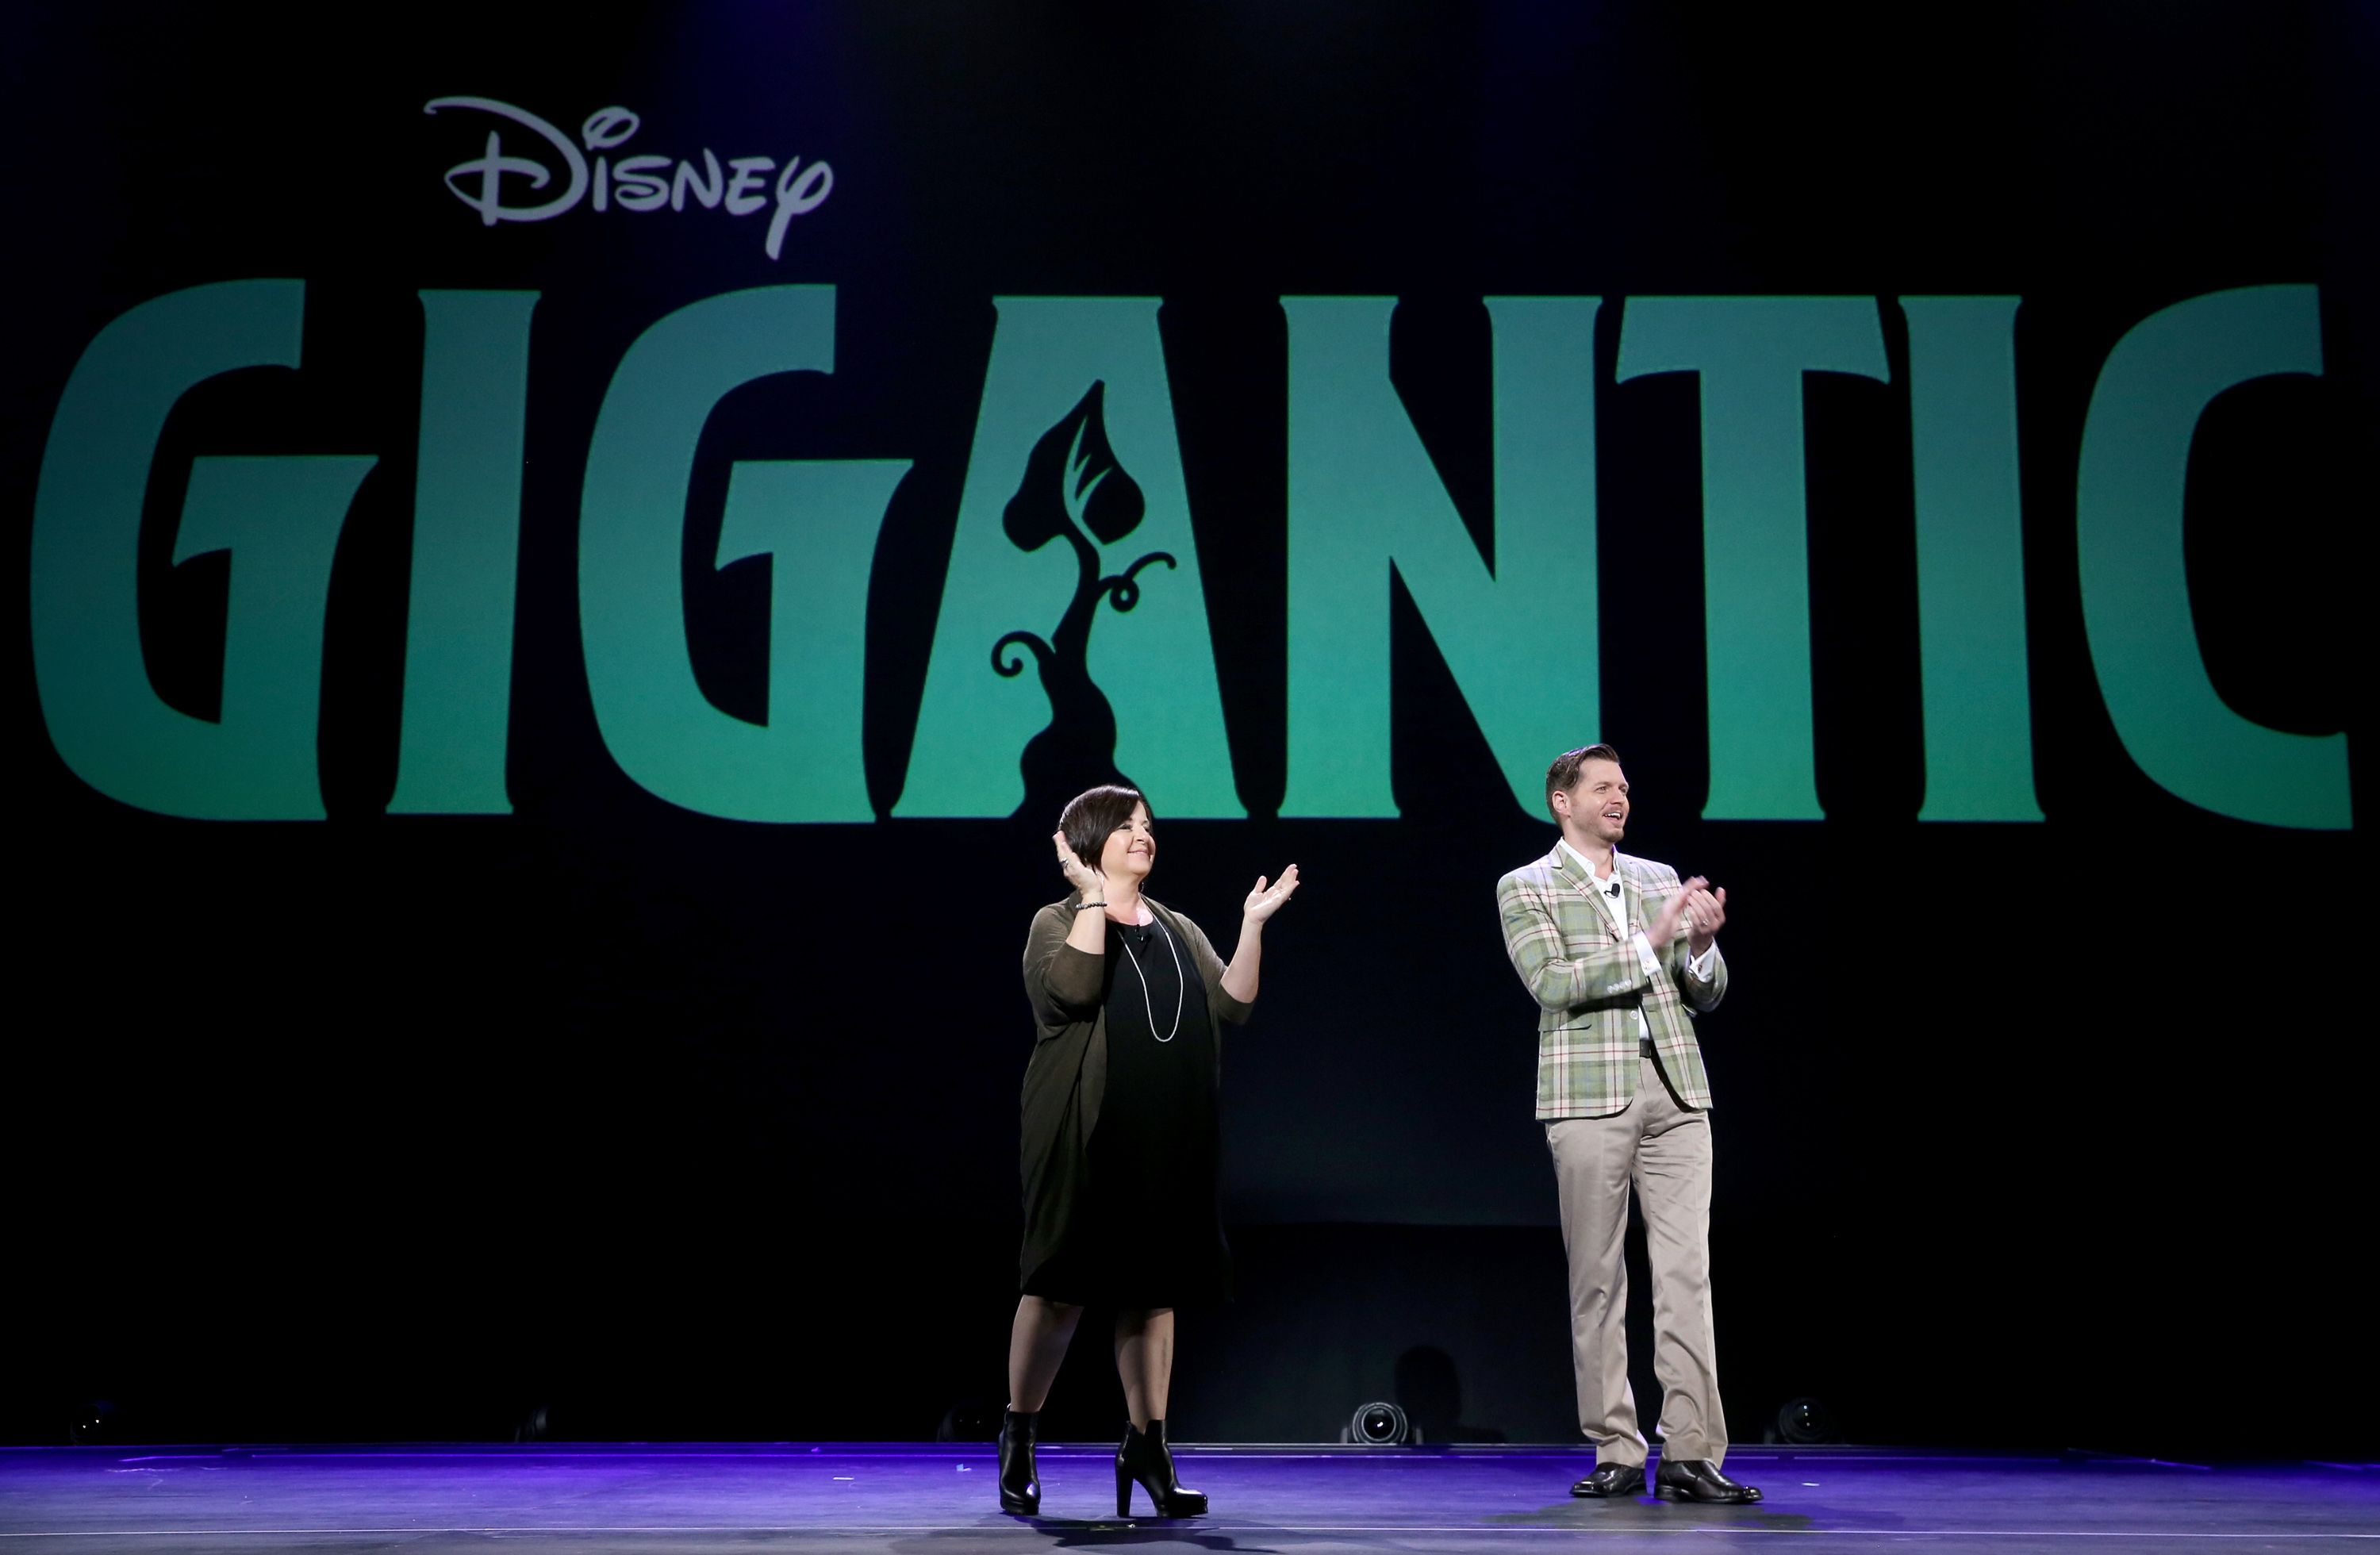 planes disney netflix with Disney Movie Logos Alice In Wonderland 2 Doctor Strange D23 on Tv Picks For Preschoolers additionally 381539399653001137 also Disney Movie Logos Alice In Wonderland 2 Doctor Strange D23 additionally Justin Timberlake And The Tennessee Kids Movie Review besides Yo Gabba Gabba Photo.